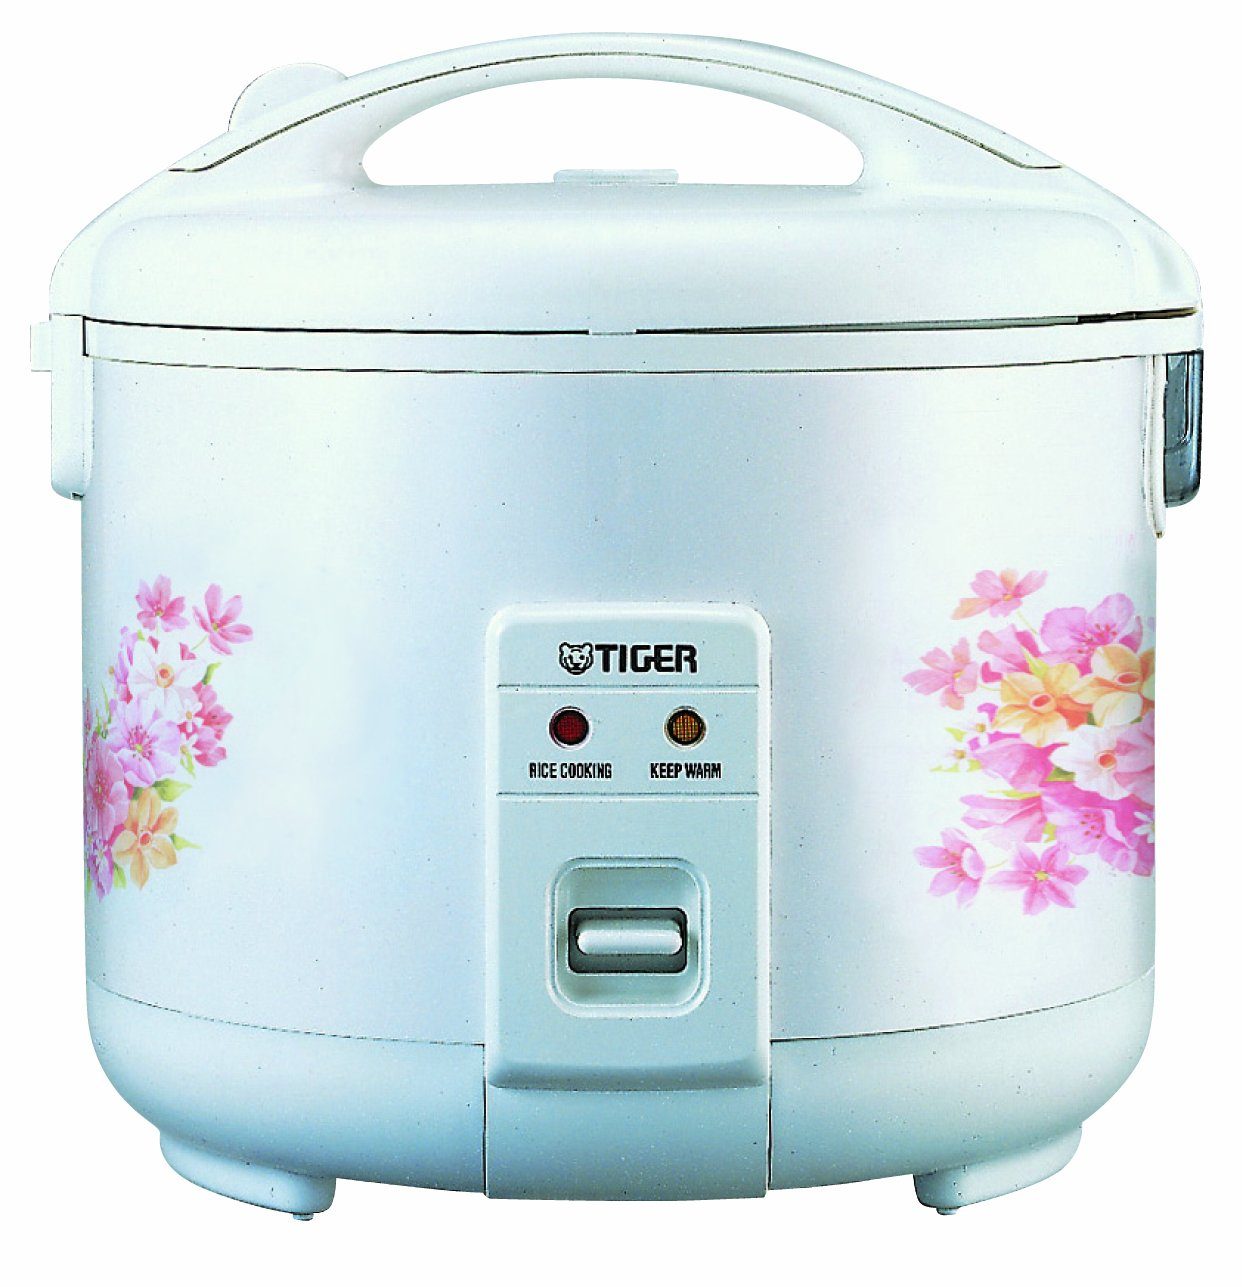 Tiger JNP-1800-FL 10-Cup (Uncooked) Rice Cooker and Warmer, Floral White by Tiger Corporation